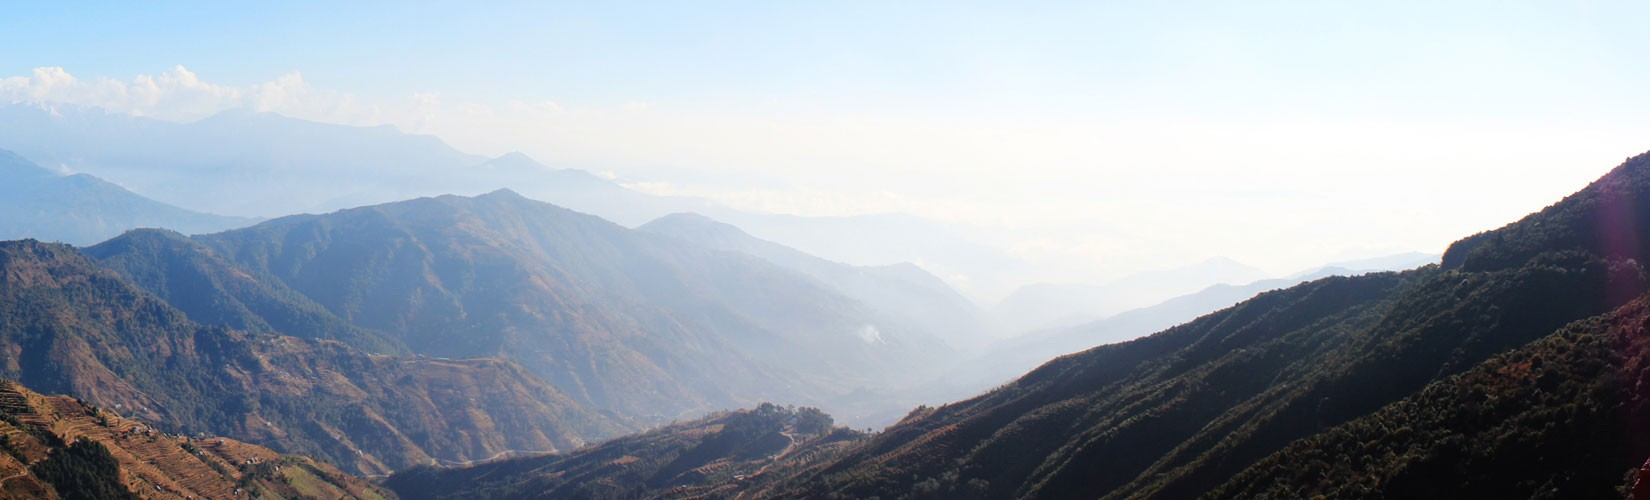 Helambu Trek is one of the easiest and shortest treks of the country located on north of Kathmandu.